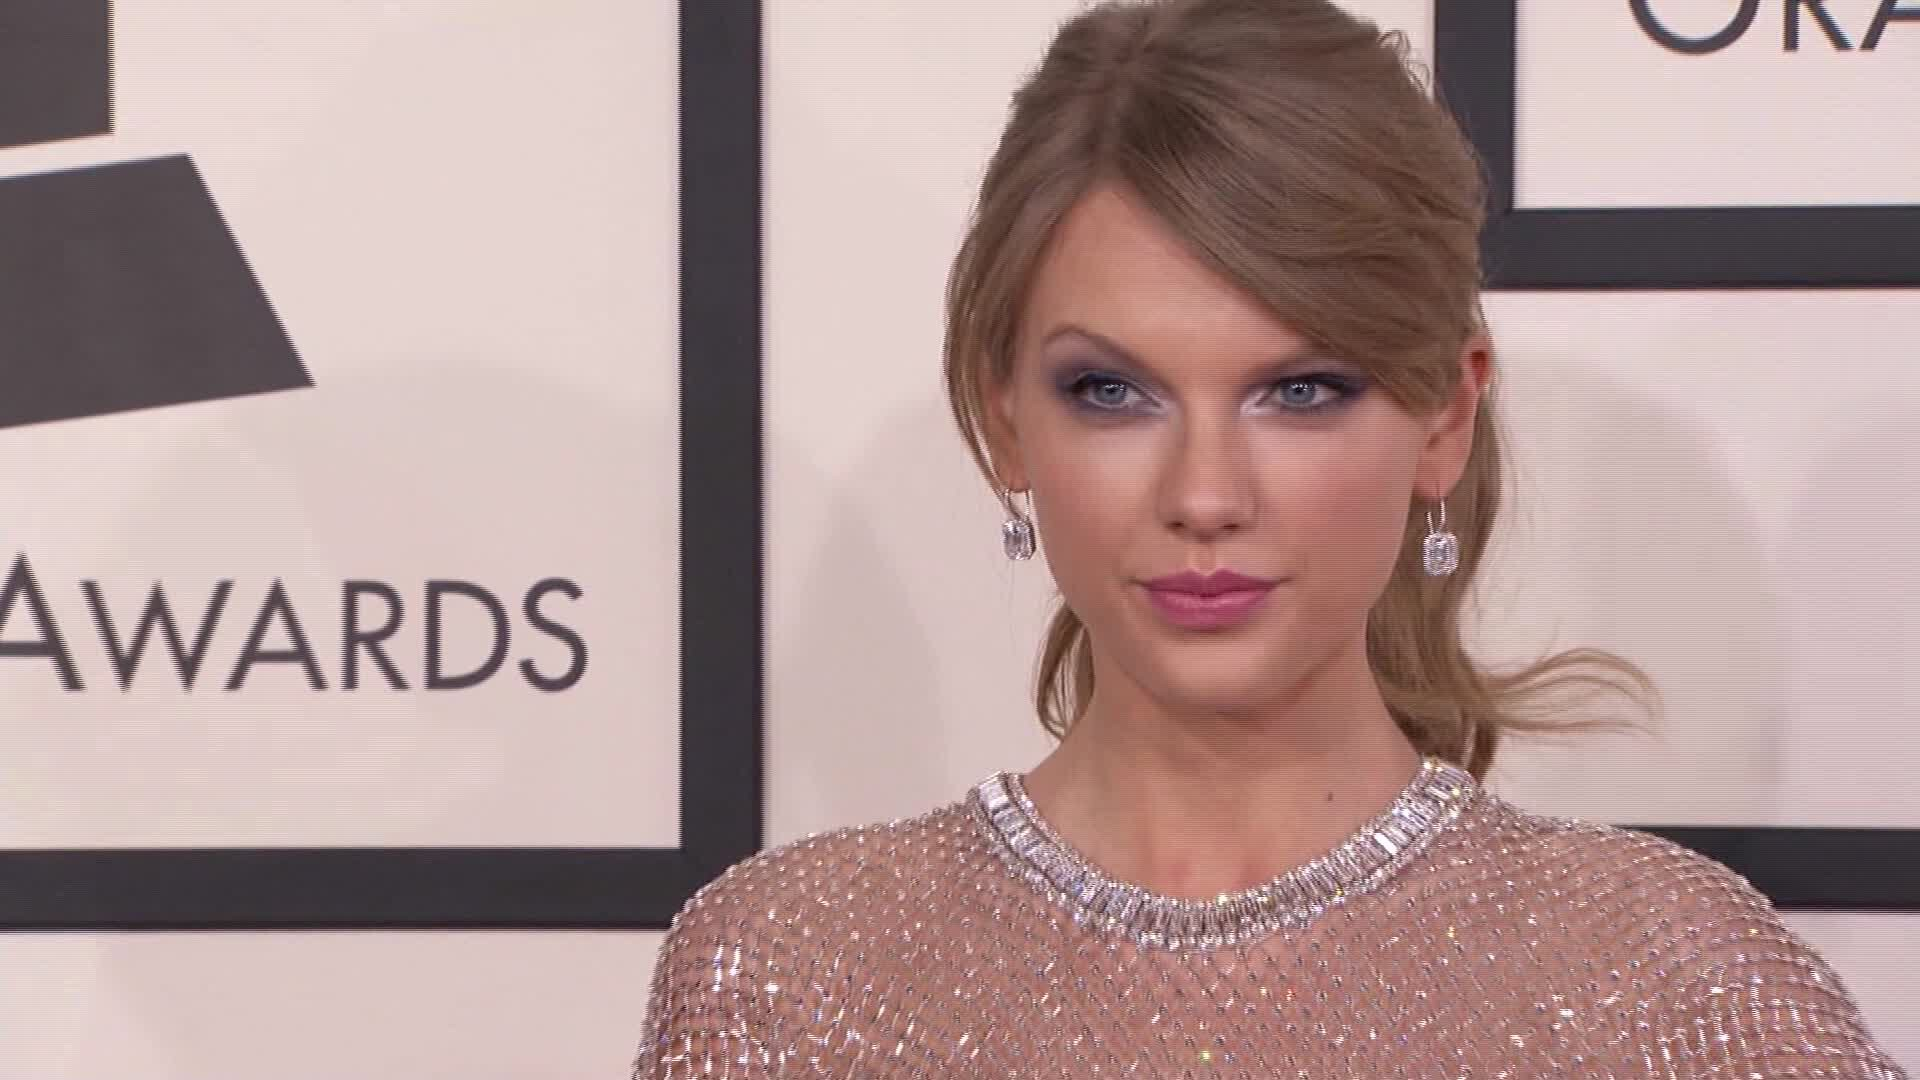 Taylor Swift joins TikTok and the Swifties go mad